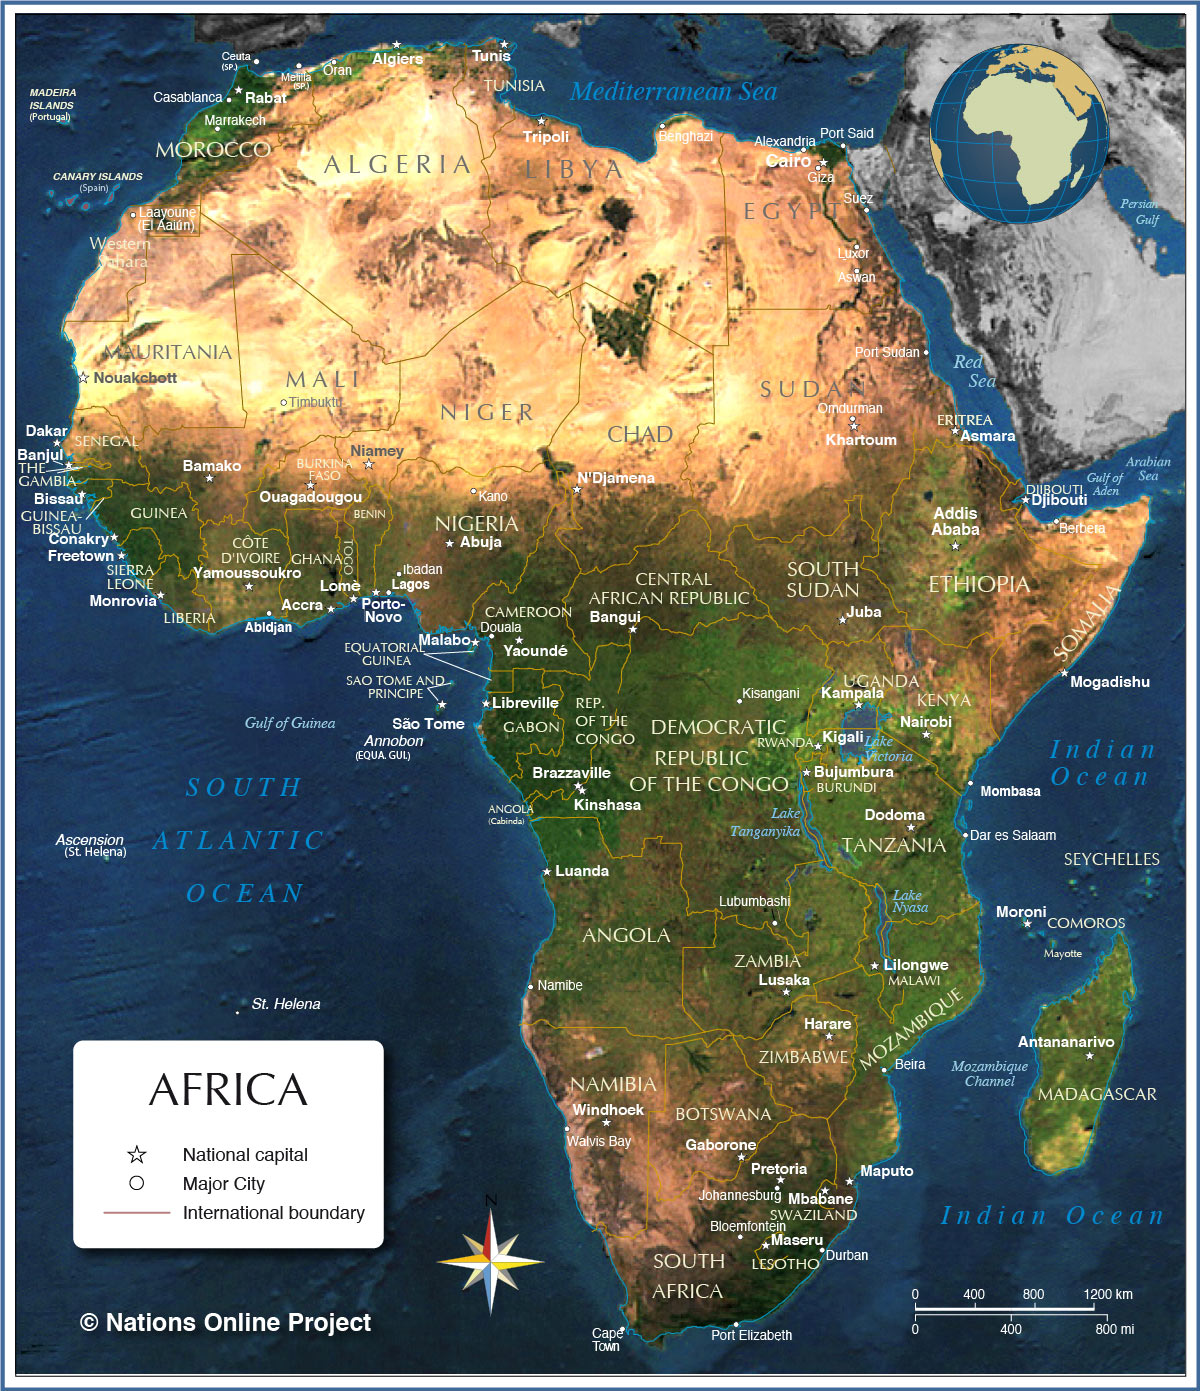 Map of Africa - Countries of Africa - Nations Online Project